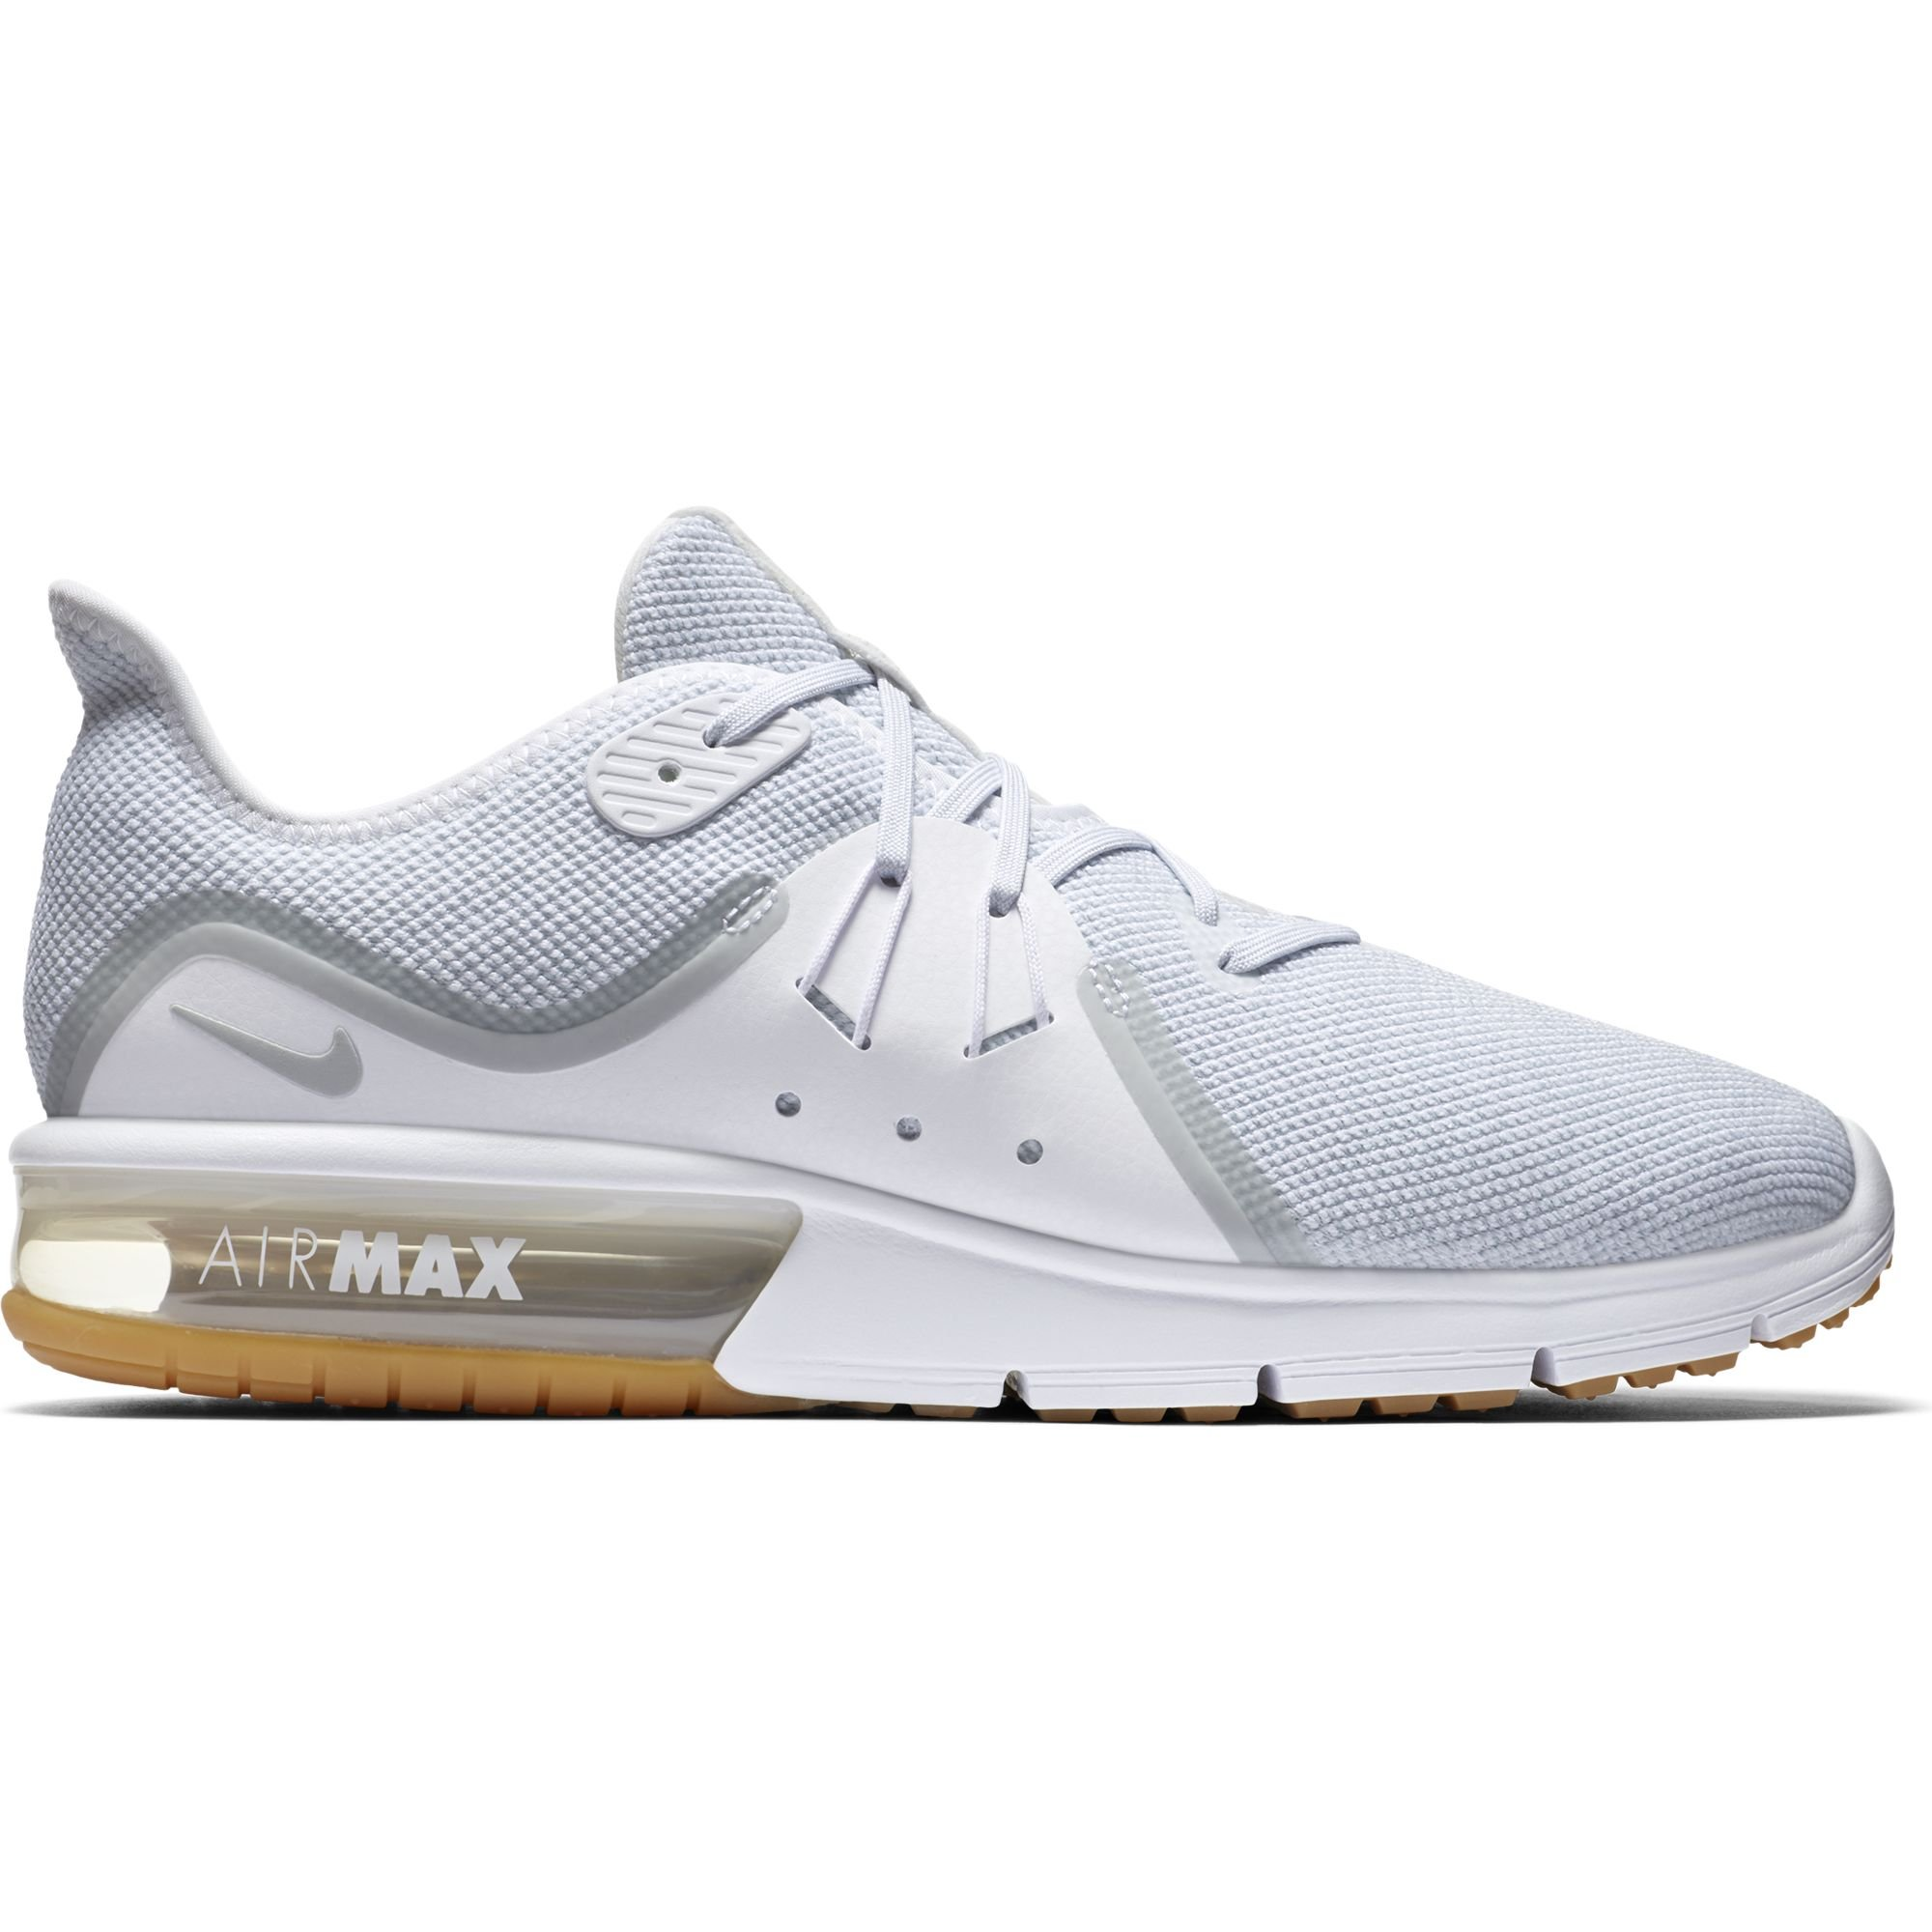 a2dc65328d3 Galleon - Nike Men s Air Max Sequent 3 Running Shoe White Pure Platinum Size  10.5 US